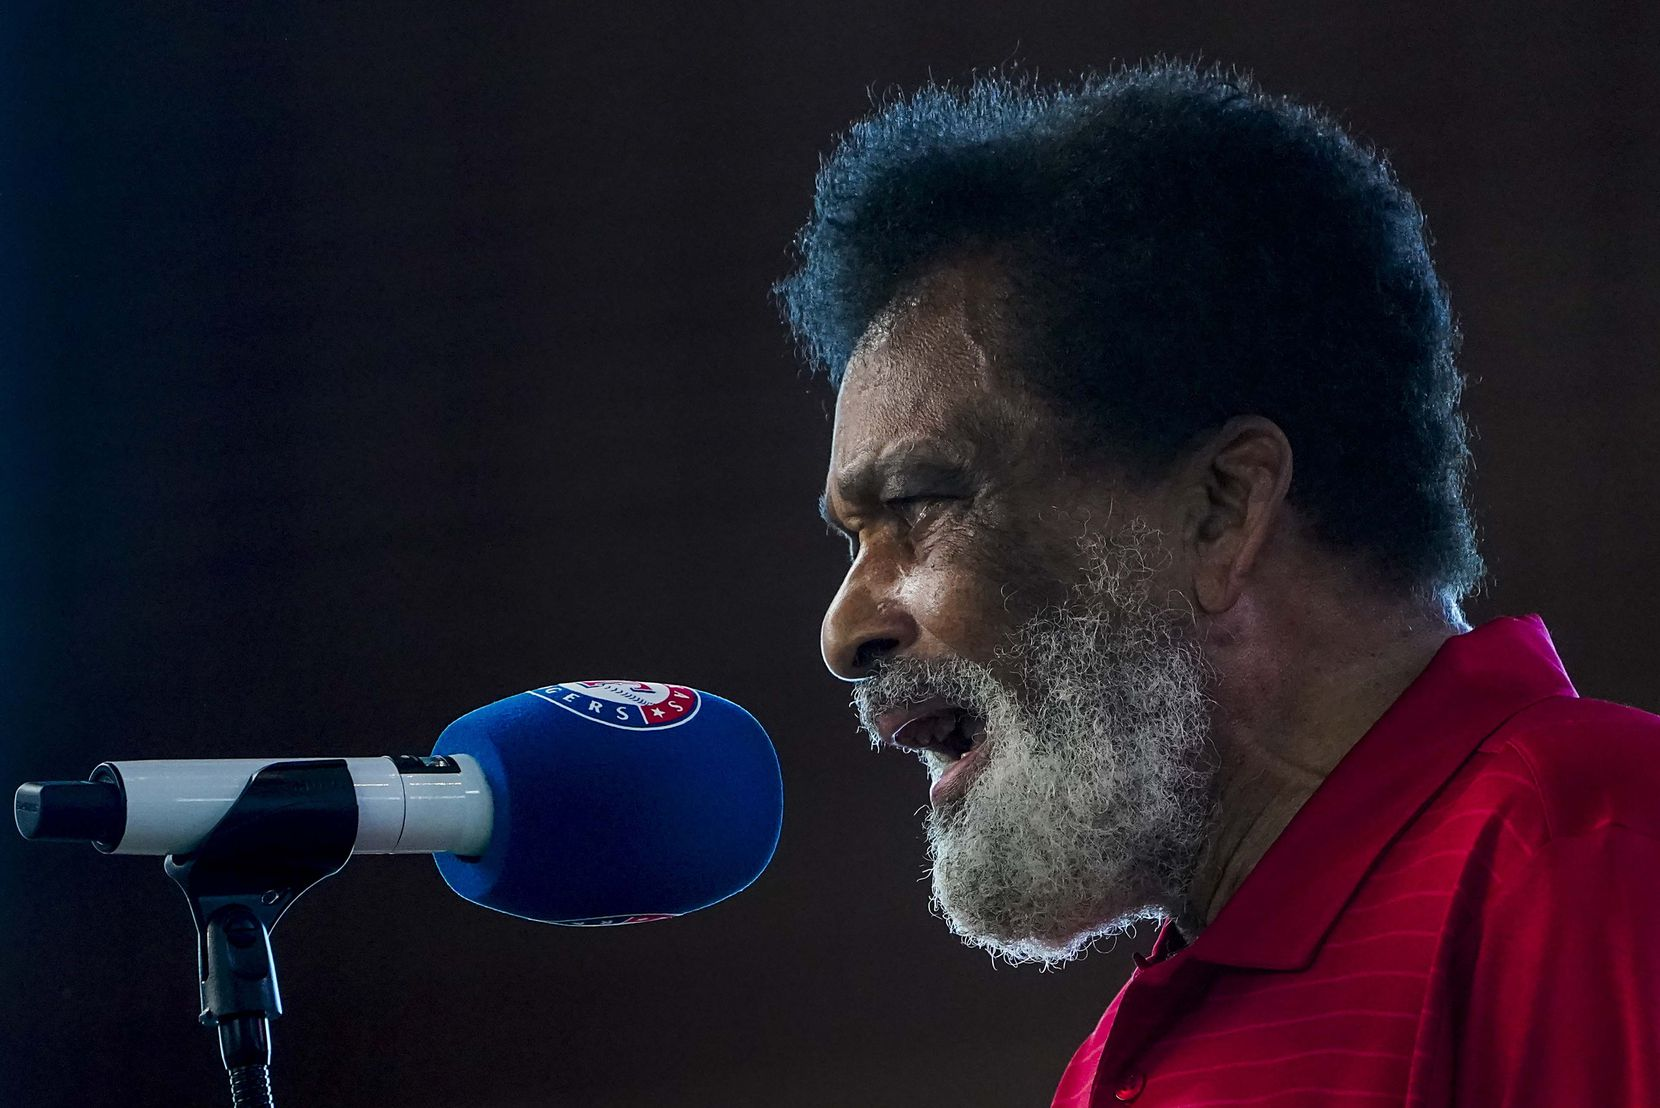 Charley Pride sang the national anthem before the Texas Rangers faced the Colorado Rockies on opening day at Globe Life Field on July 24, 2020.